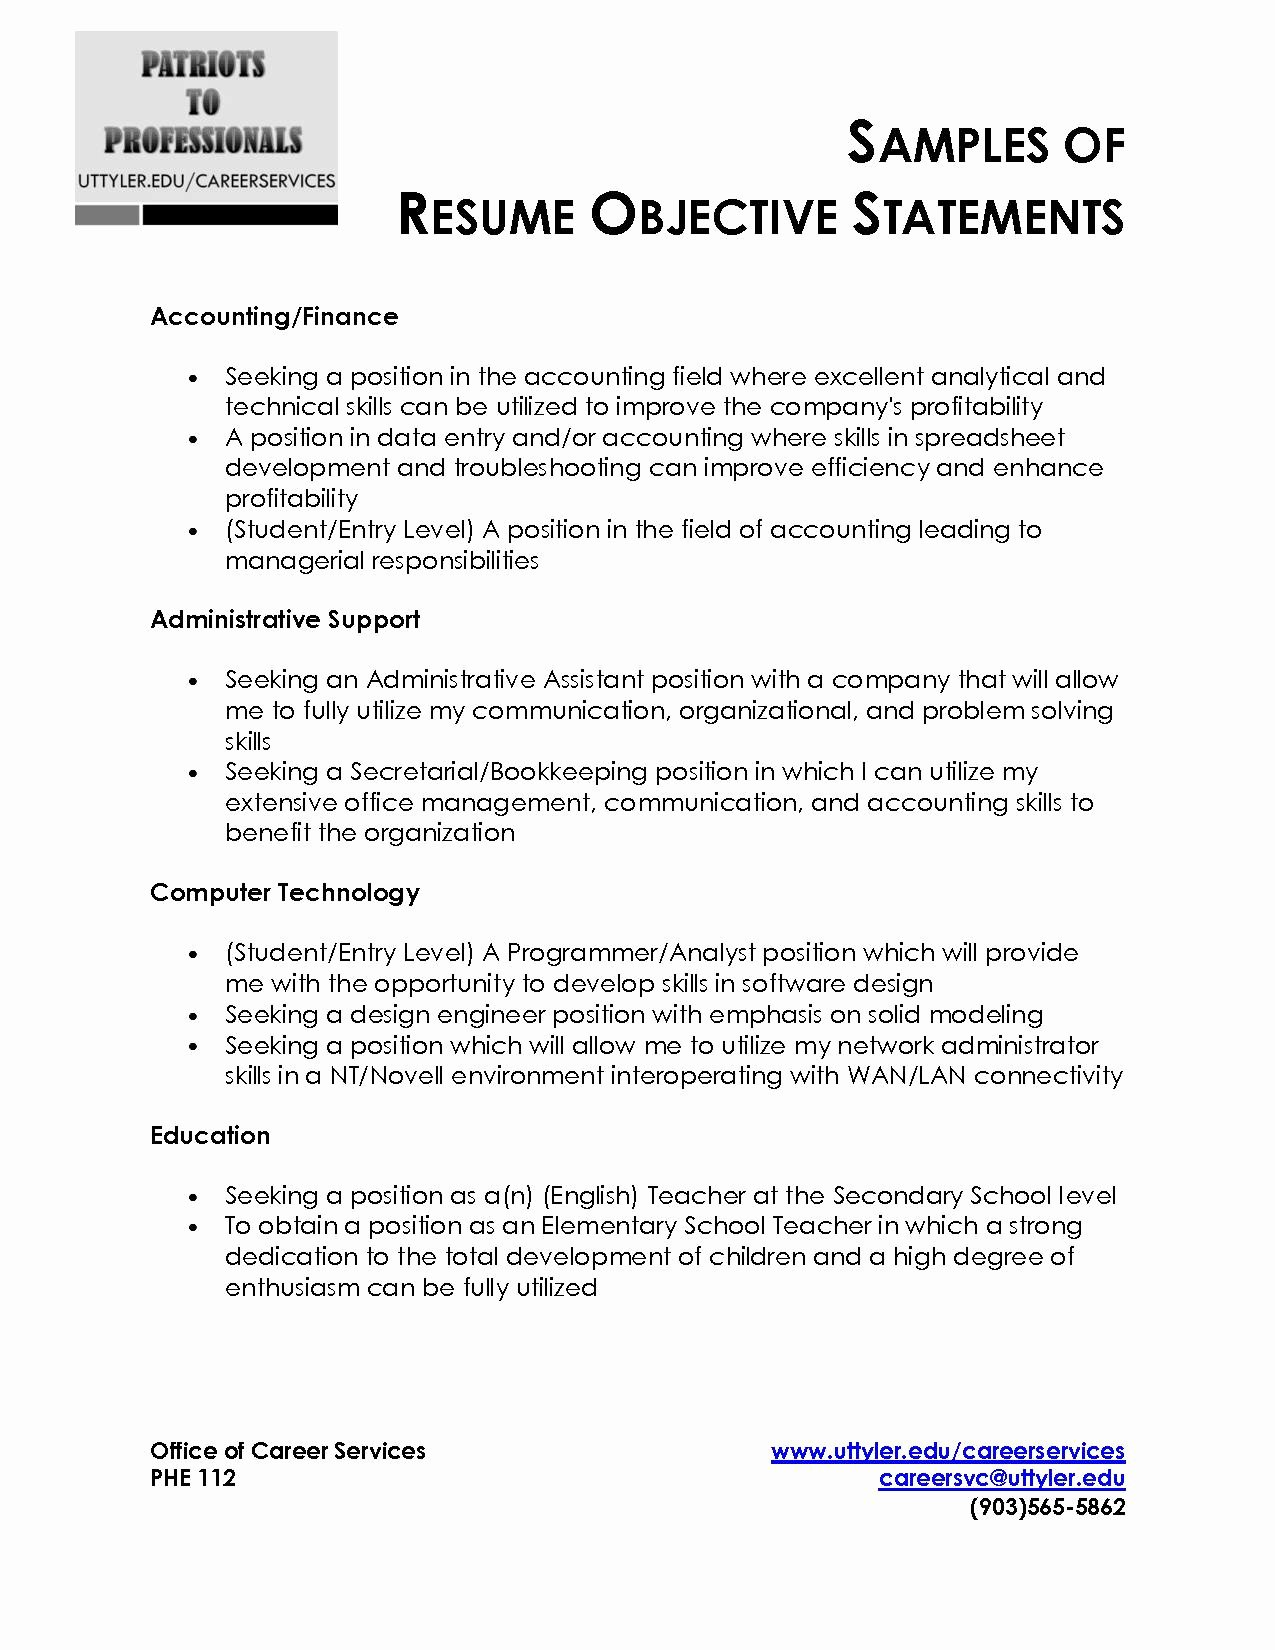 Teaching Resume Samples Entry Level Fresh Entry Level